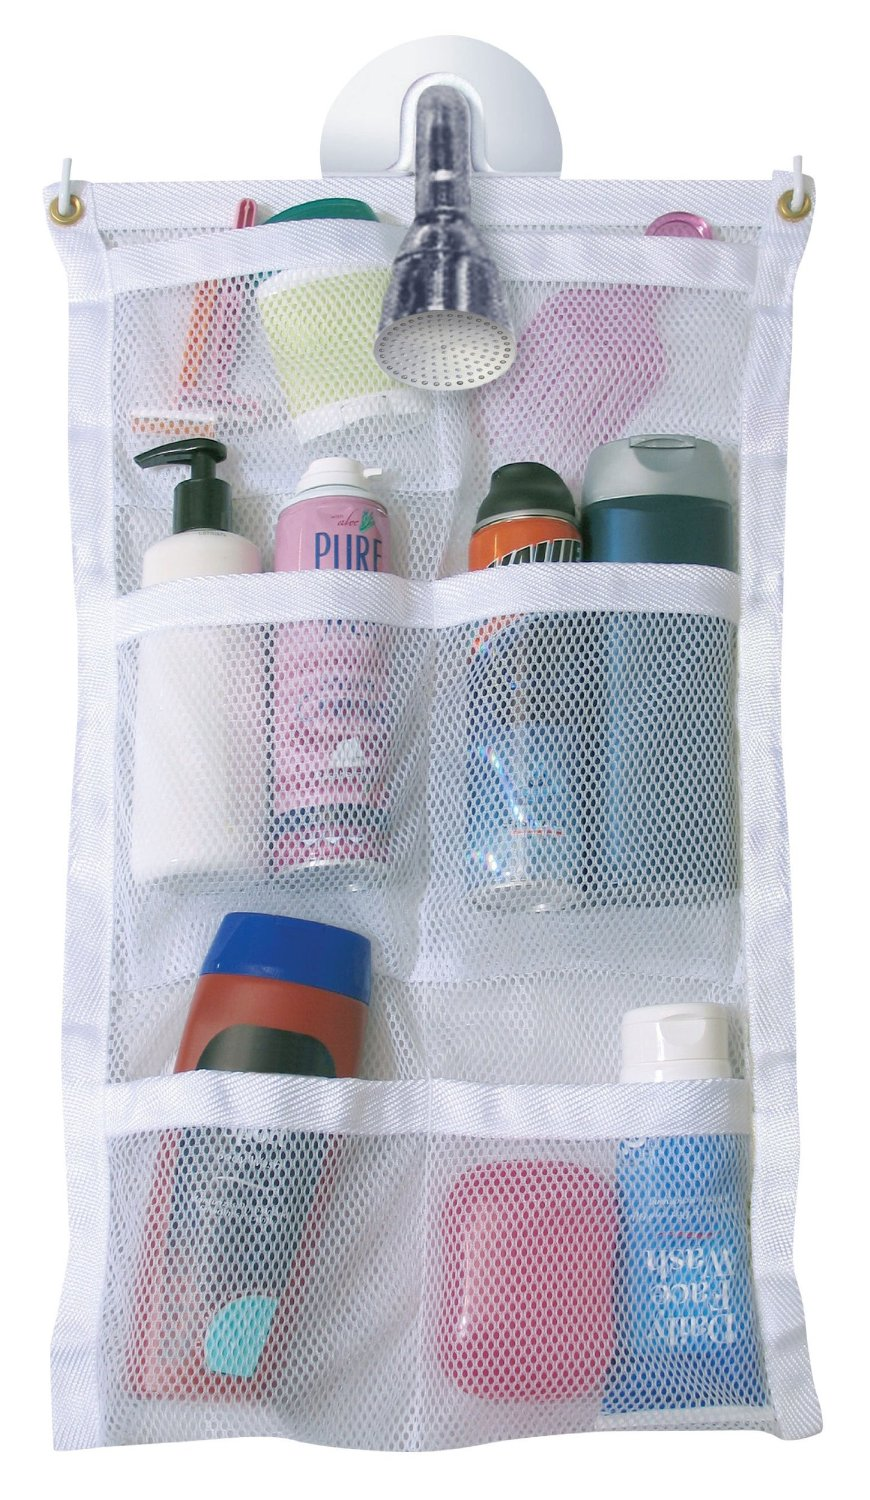 Cheap Shower Door Organizer, find Shower Door Organizer deals on ...